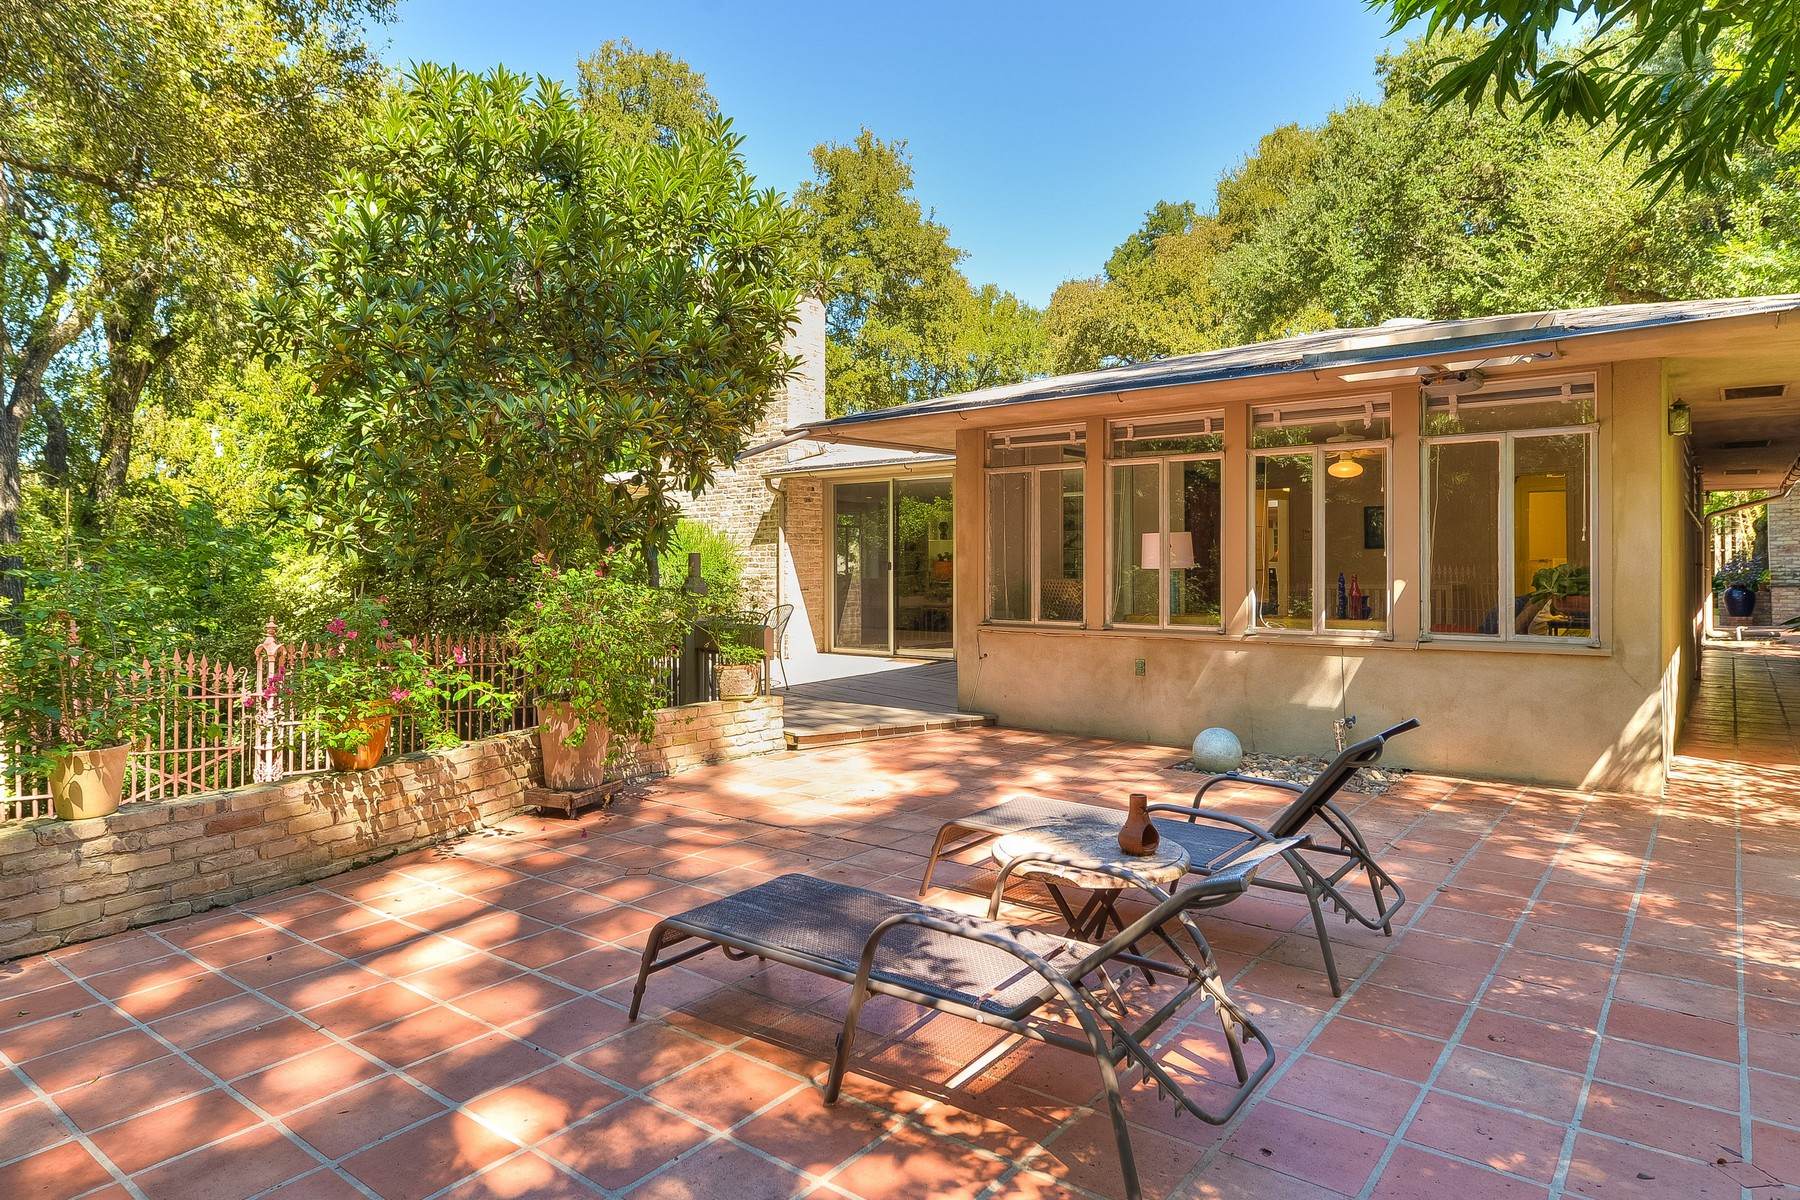 Additional photo for property listing at Stunning Mid-Century Modern Architecture 2311 Shoal Creek Blvd Austin, Texas 78705 Estados Unidos